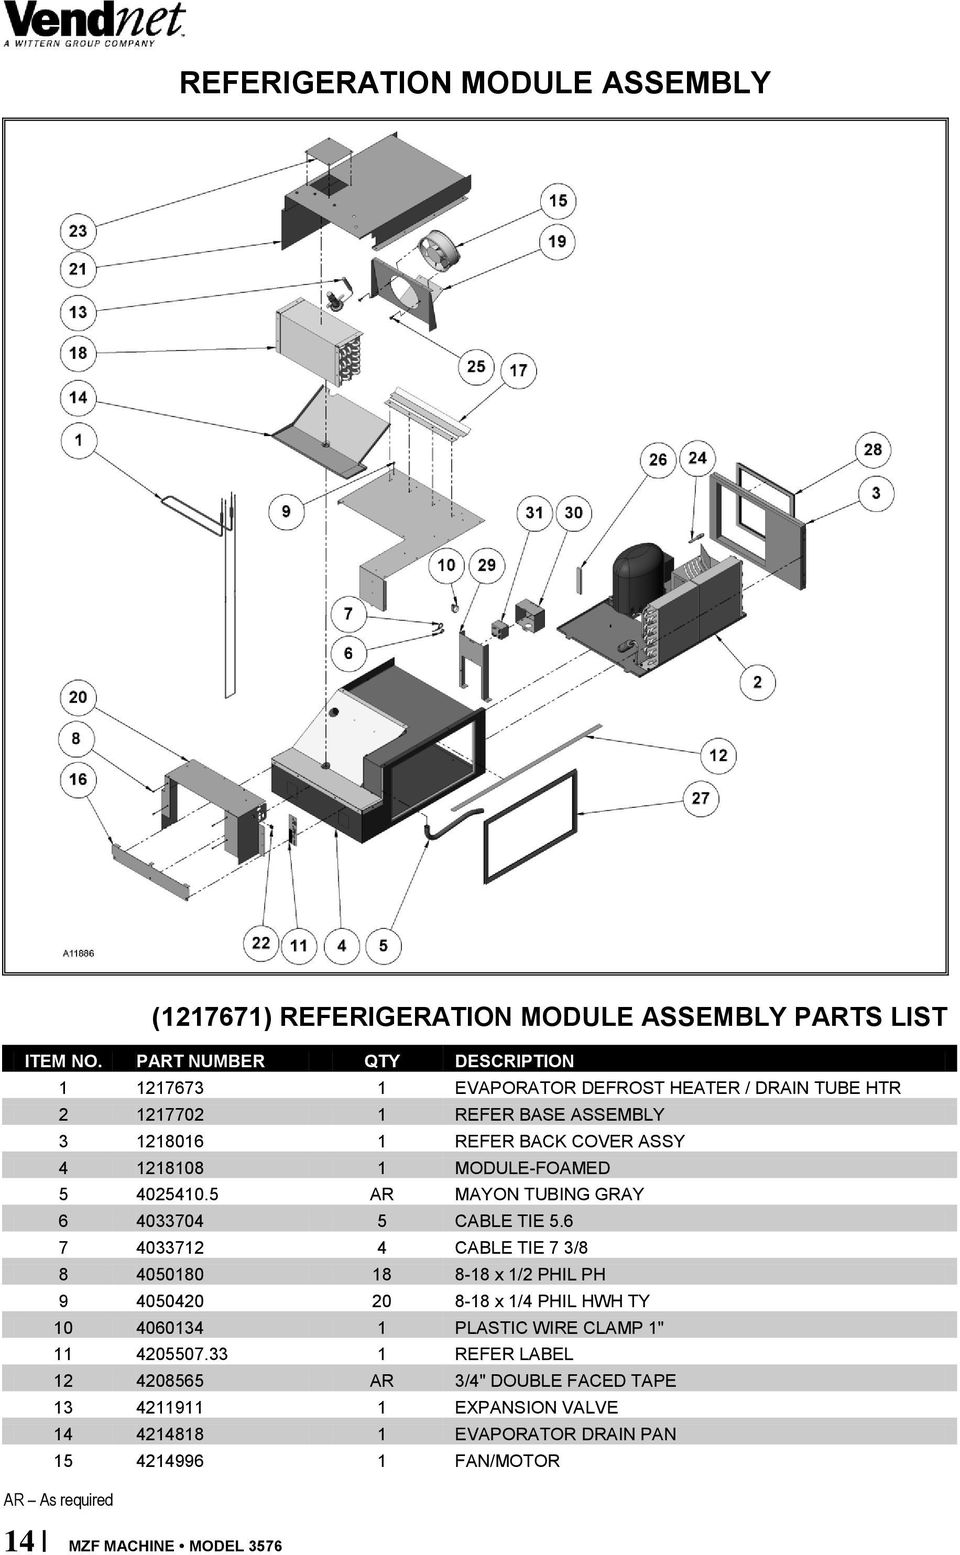 Multi Zone Foamed Machine Model Parts Manual Pdf Door Shroud Latch Assembly Diagram And List For Maytag 1 Module 5 40254105 Ar Mayon Tubing Gray 6 4033704 Cable Tie